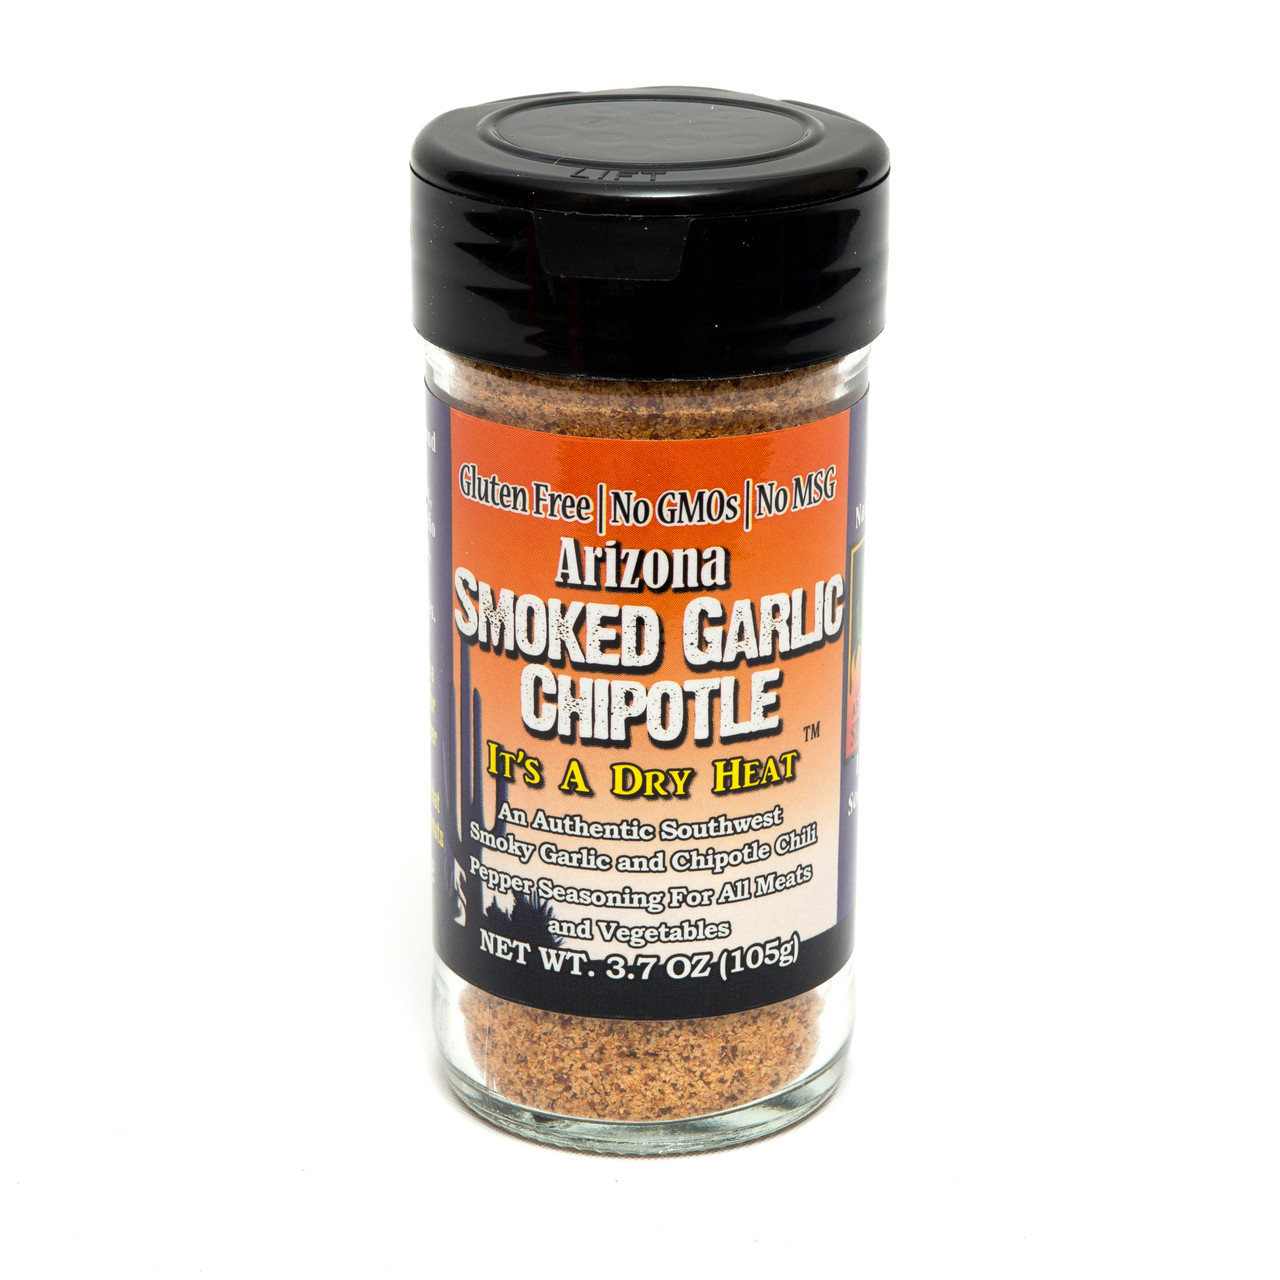 Arizona Smoked Garlic Chipotle 3.75oz